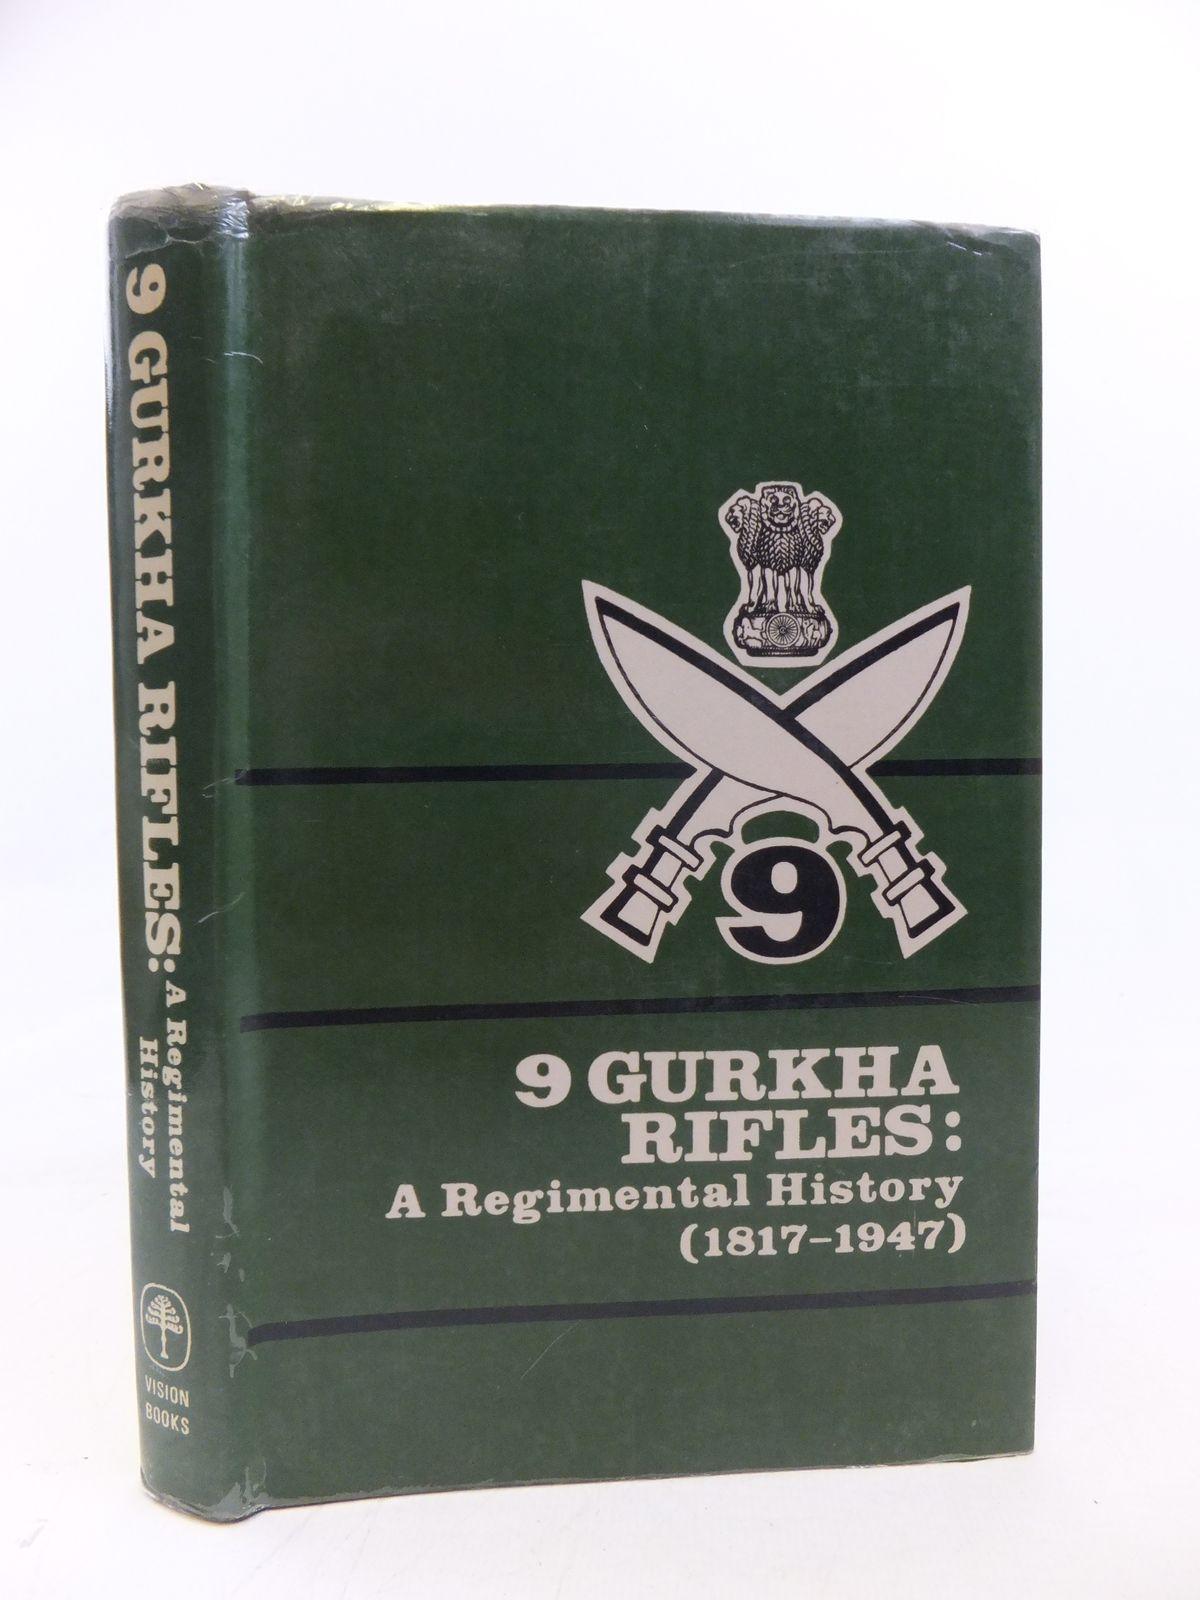 Photo of 9 GURKHA RIFLES A REGIMENTAL HISTORY (1817-1947) published by Vision Books (STOCK CODE: 1208097)  for sale by Stella & Rose's Books